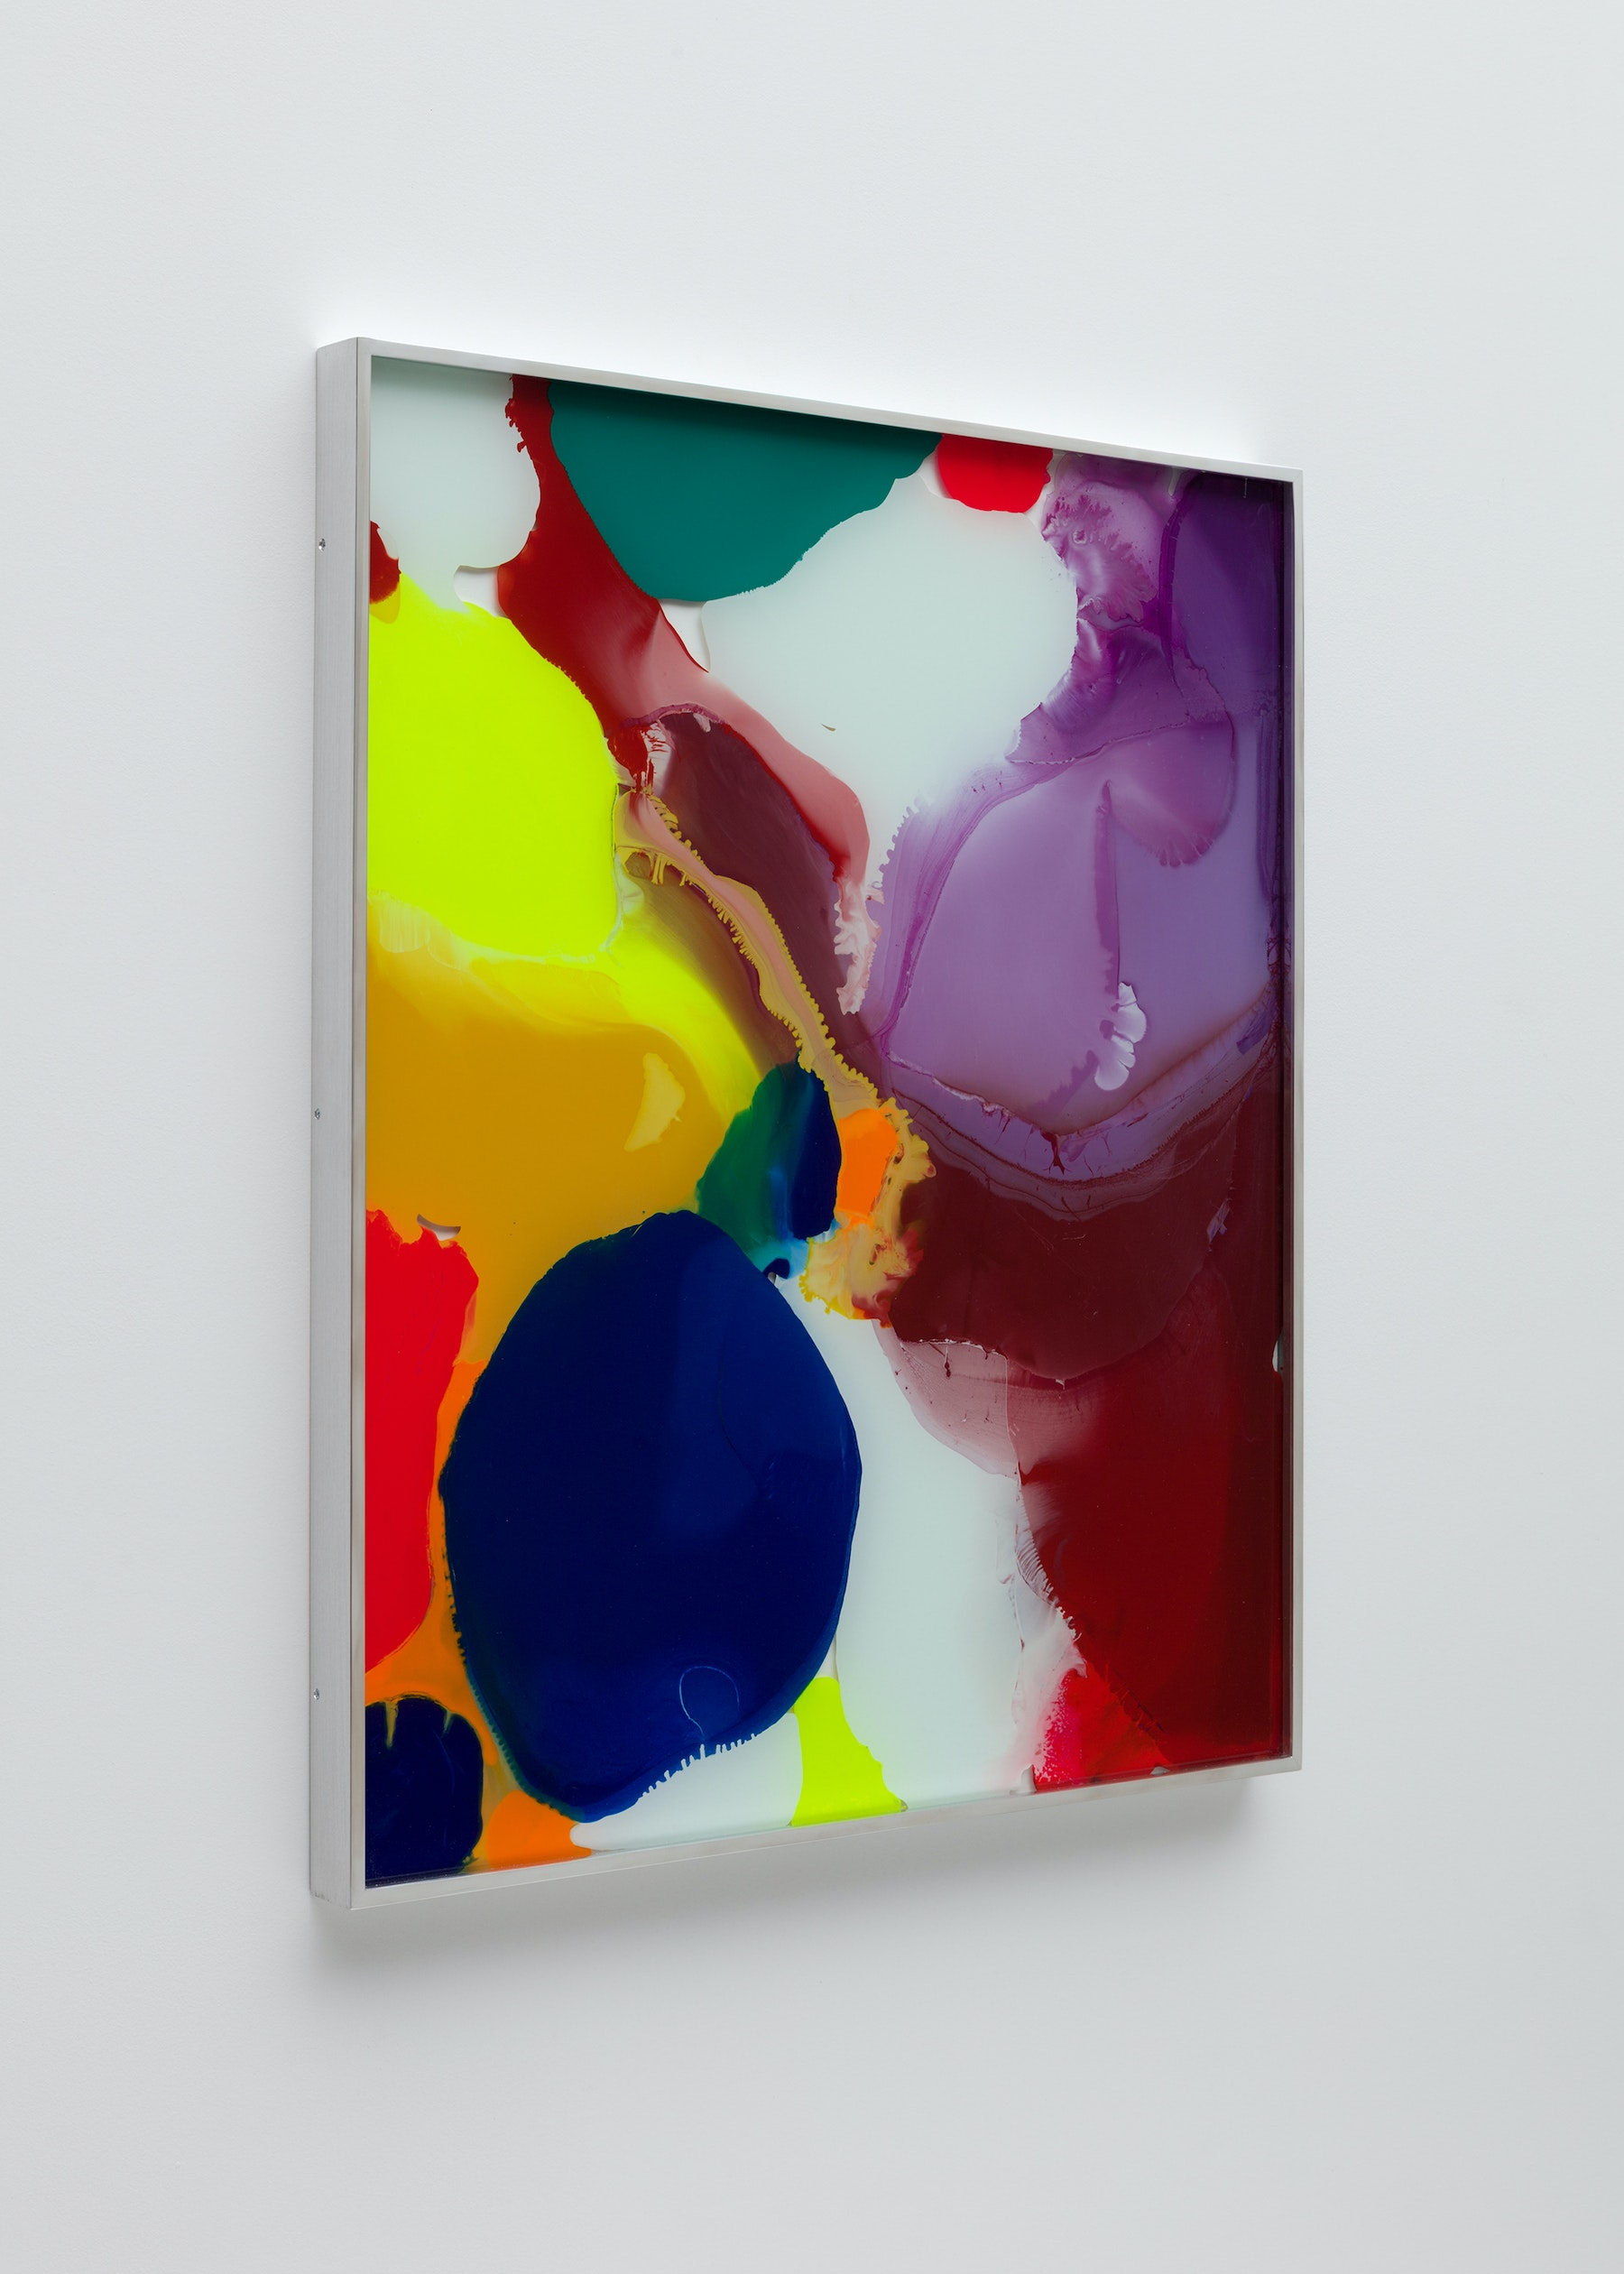 """Yunhee Min """"Up Close in Distance (variation study c2),"""" 2018 Enamel on laminated glass 30.75 x 25.75"""" [HxW] (78.11 x 65.41 cm) Inventory #MIN339 Courtesy of the artist and Vielmetter Los Angeles Photo credit: Brica Wilcox"""